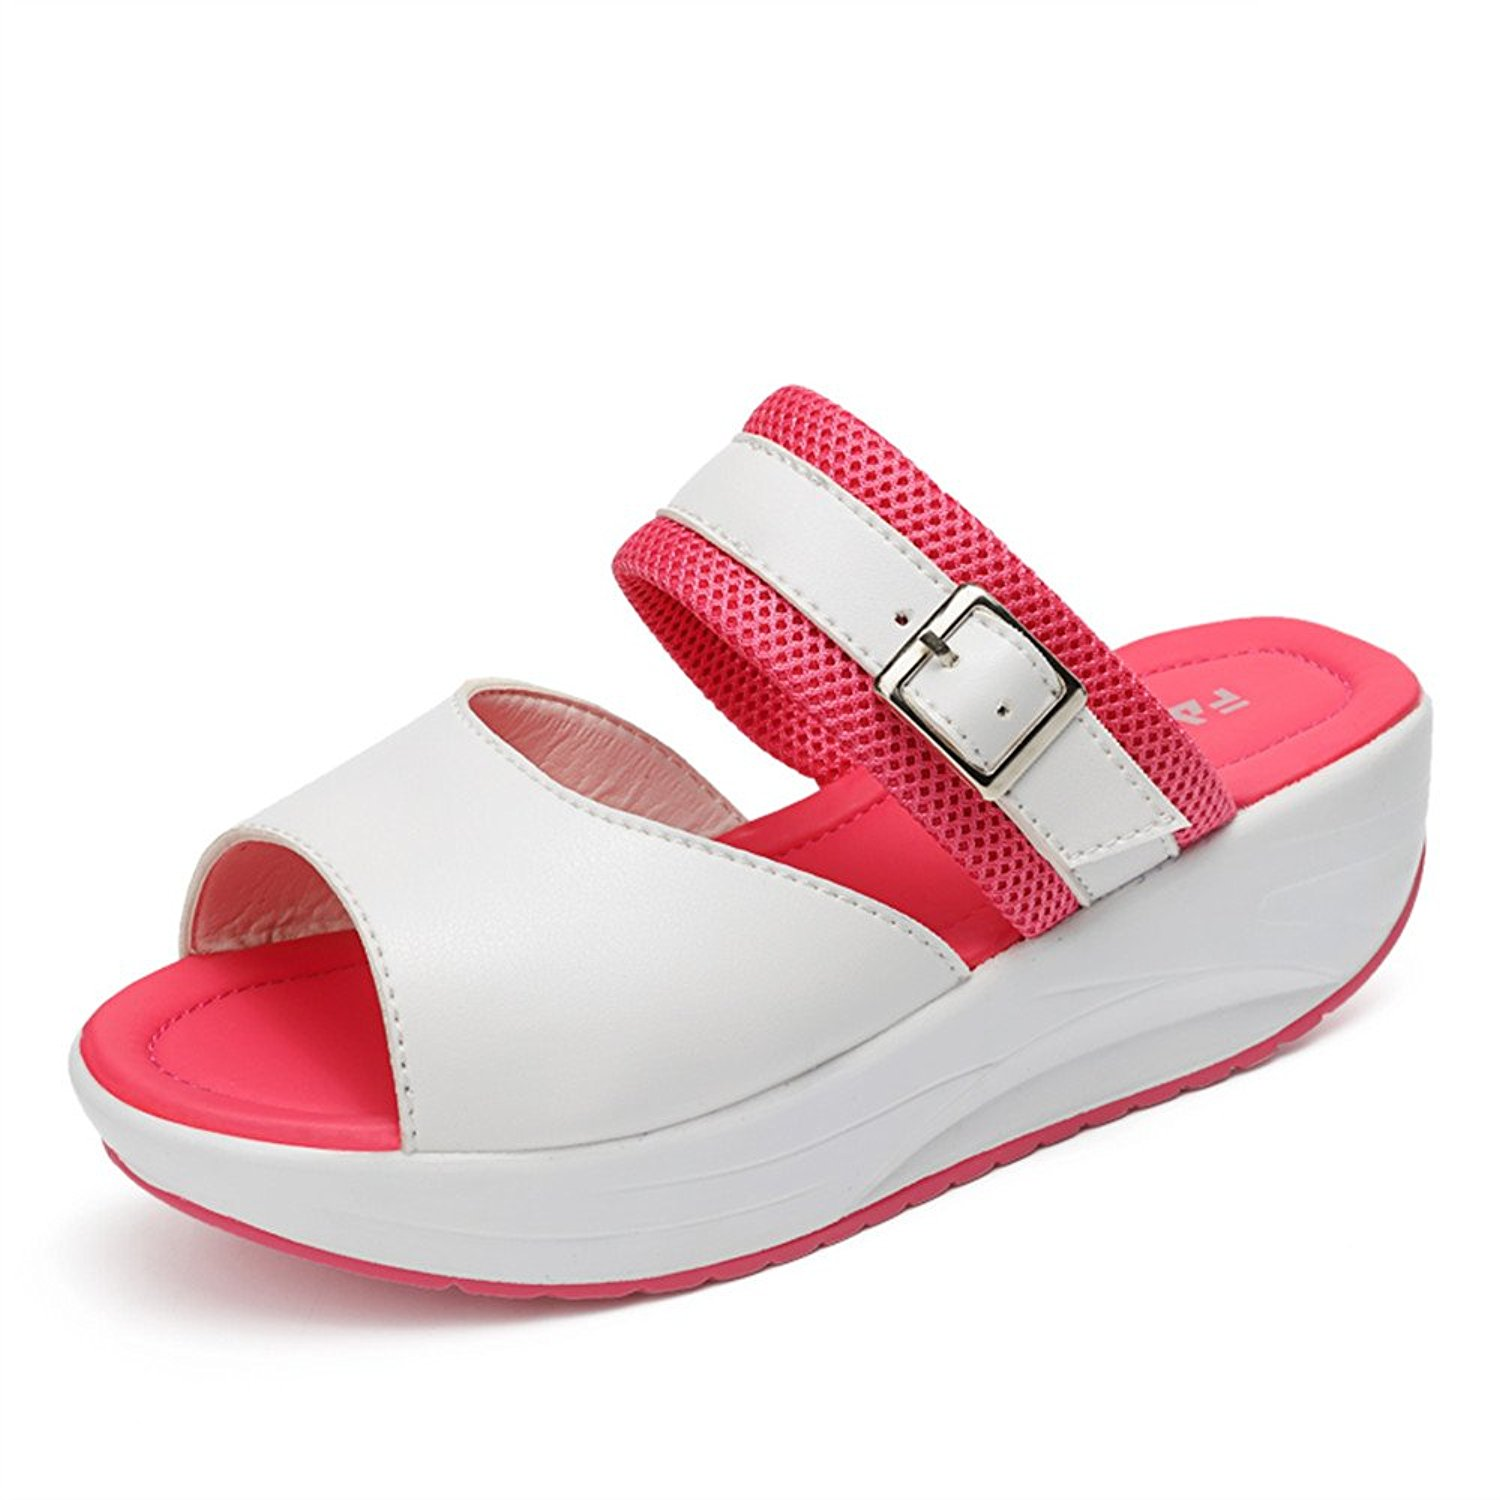 0aac4abc479 Get Quotations · ZYEN Women Sandals Peep Toe High Heels Wedge with Platform  Buckle Slippers Arch Support for Summer